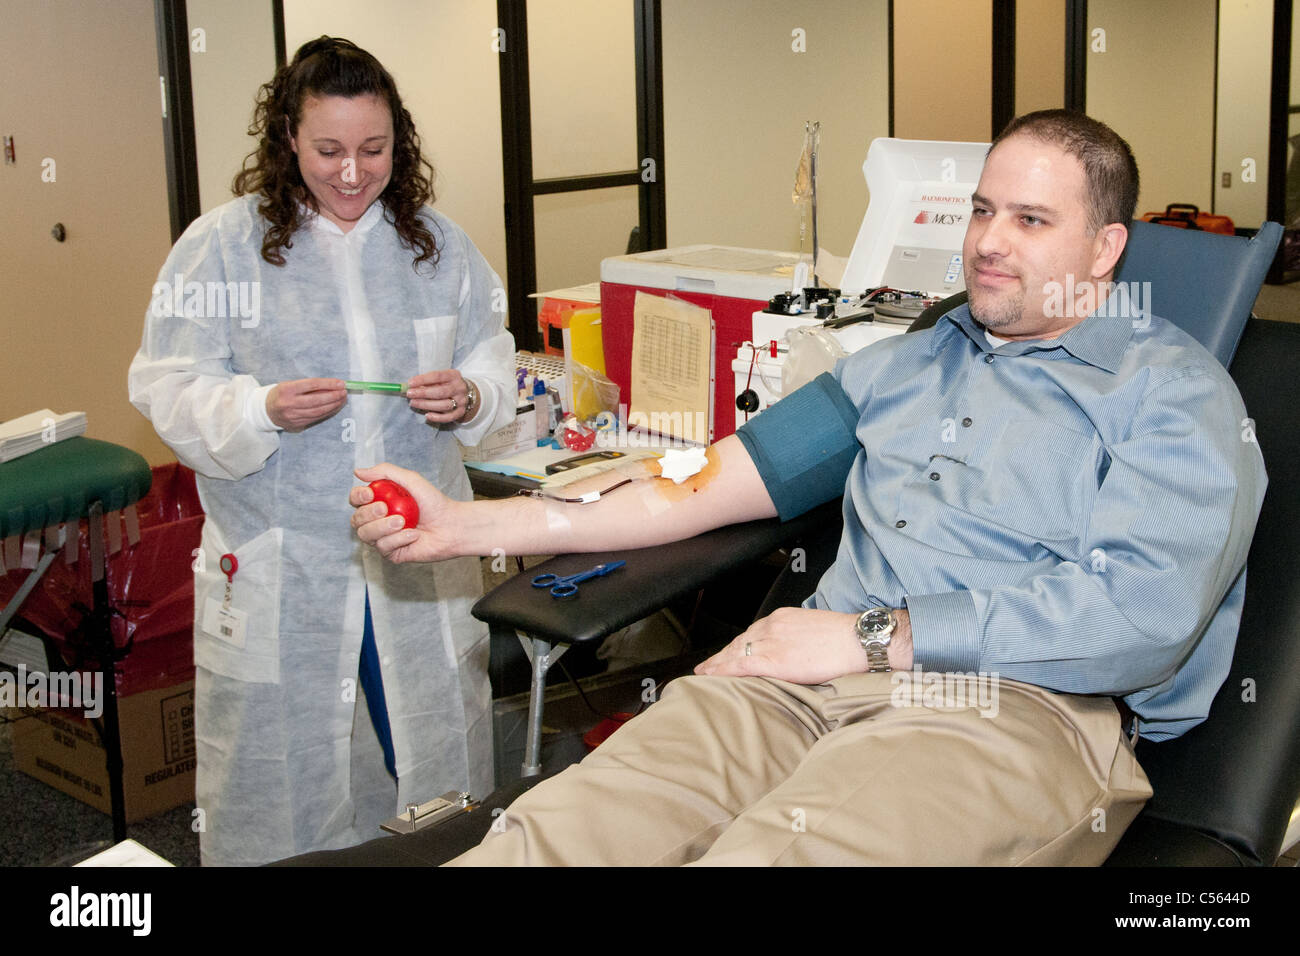 Man donates blood during a Red Cross Blood Drive at an office park - Stock Image